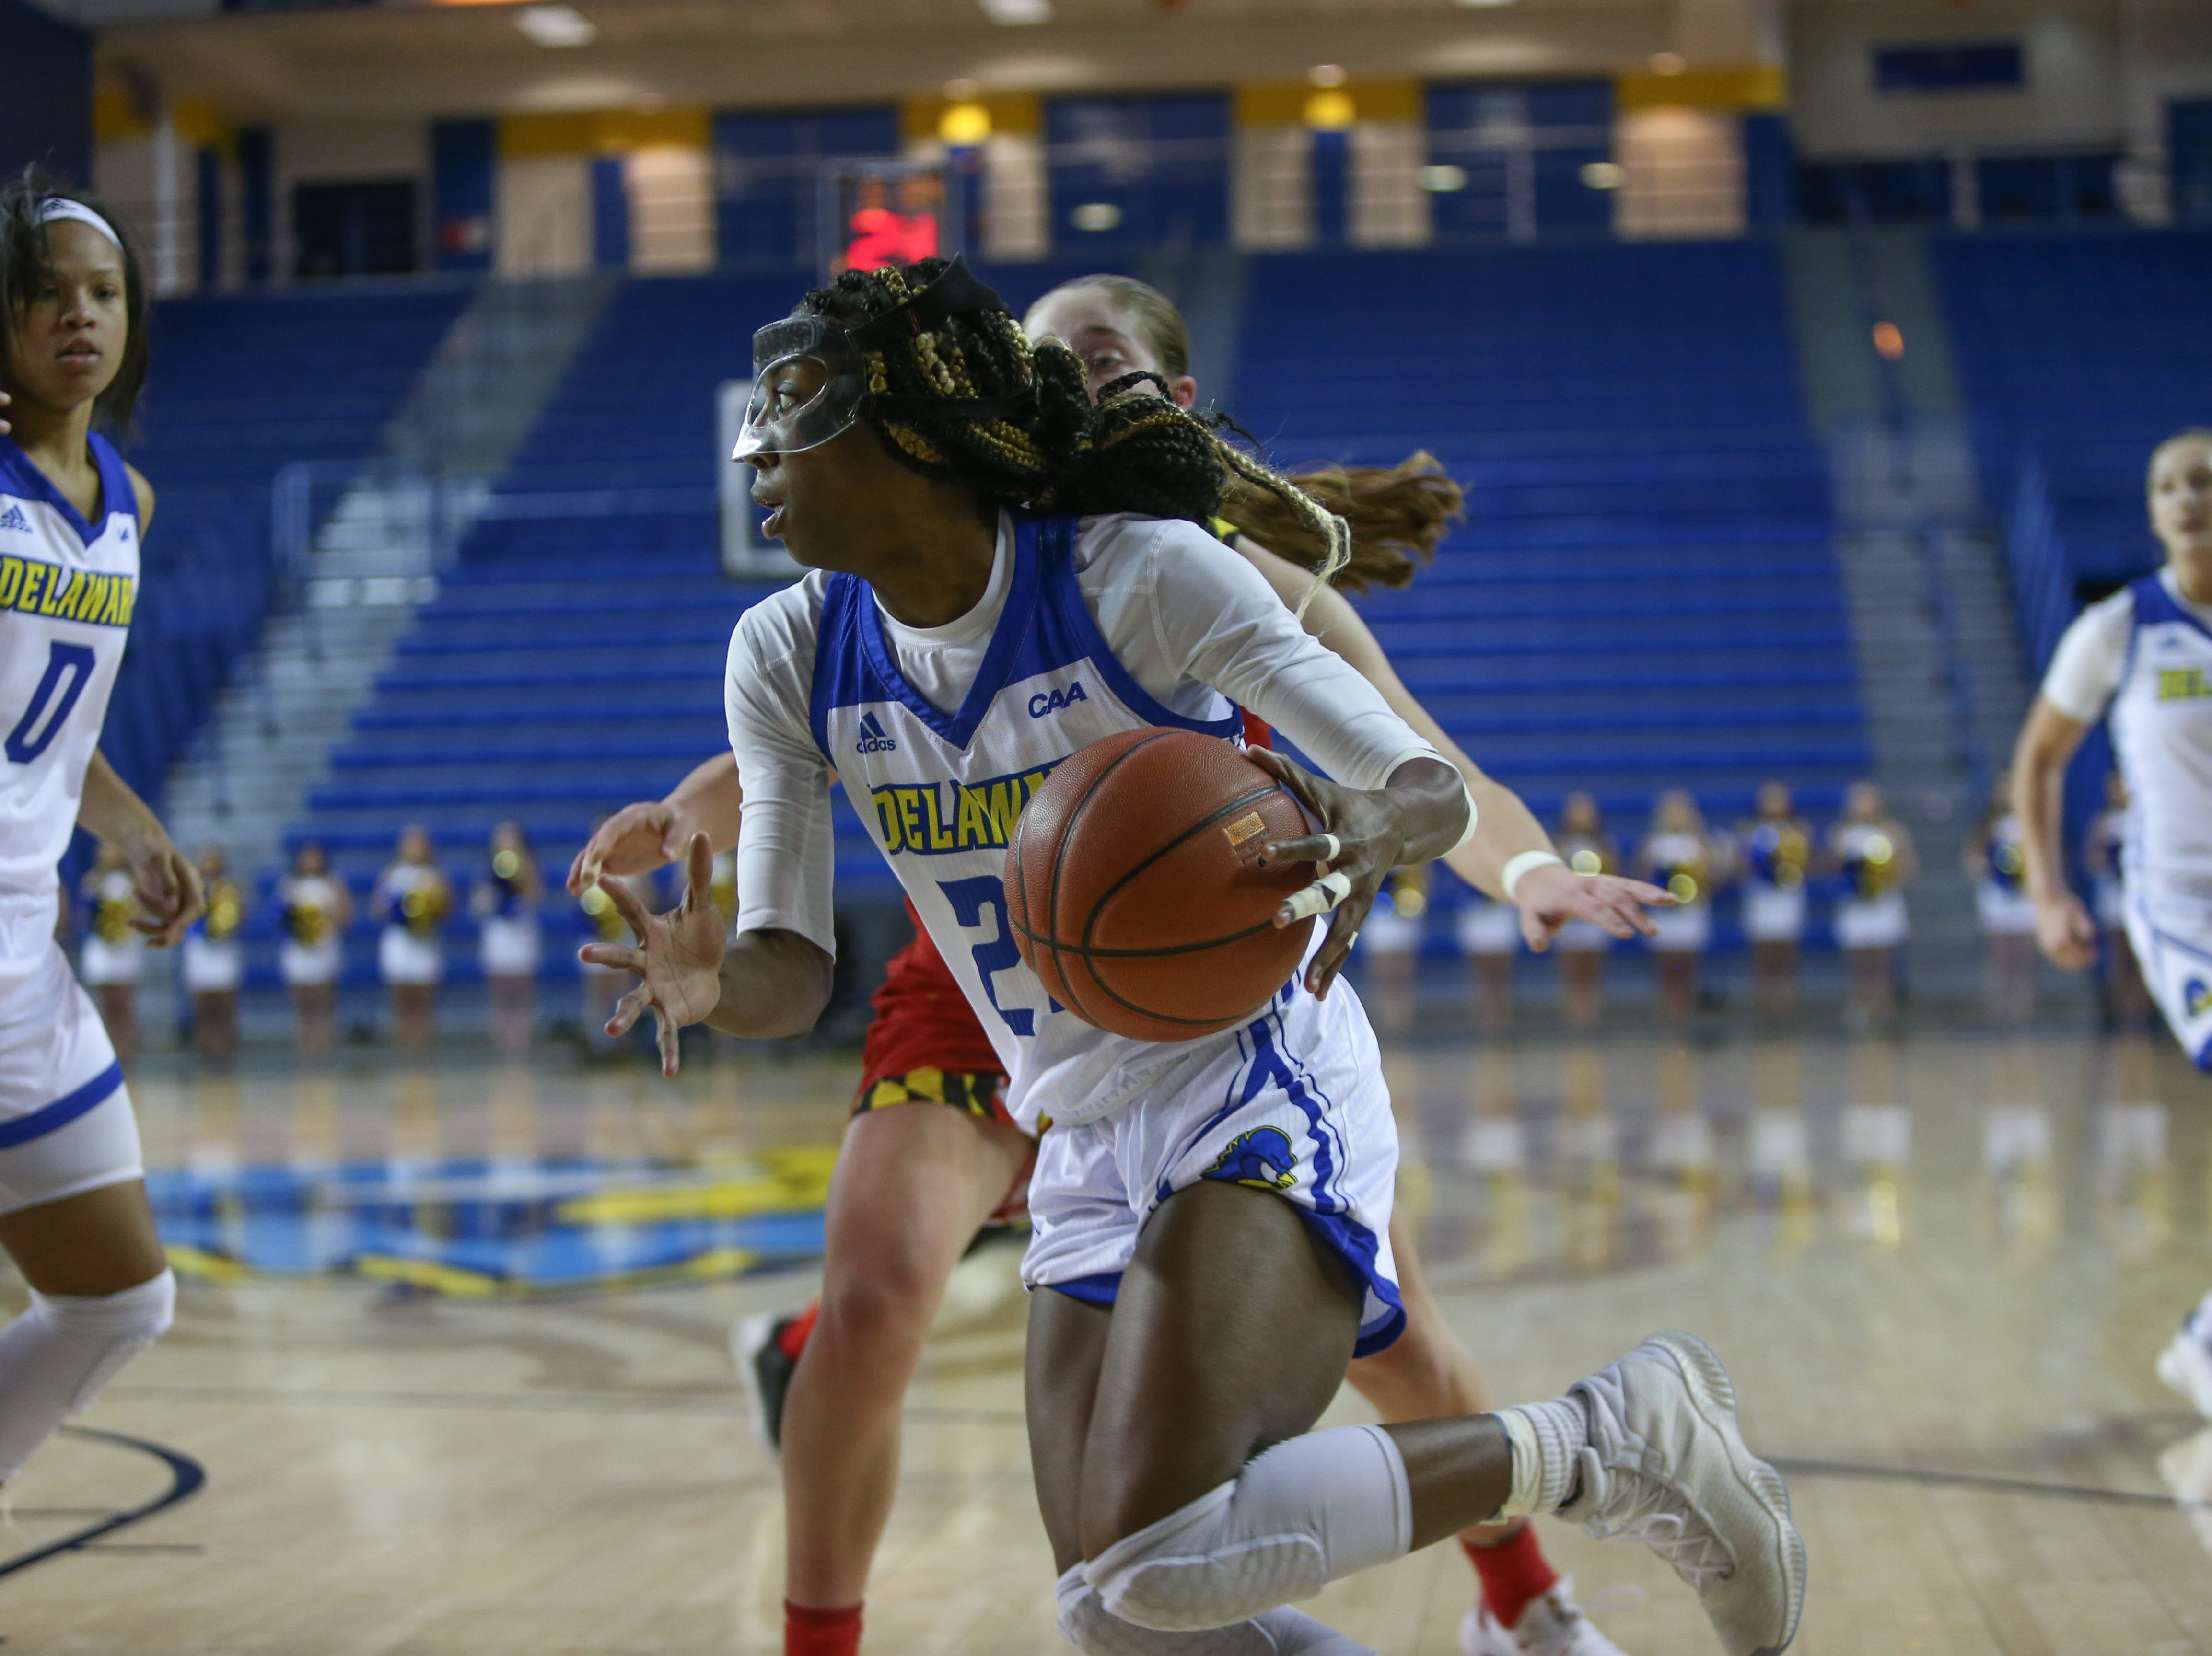 Delaware guard Jasmine Dickey drives to the basket in the third quarter against Maryland. The University of Delaware women's basketball team falls to No. 5 University of Maryland 77-53 at the Bob Carpenter Center Thursday.